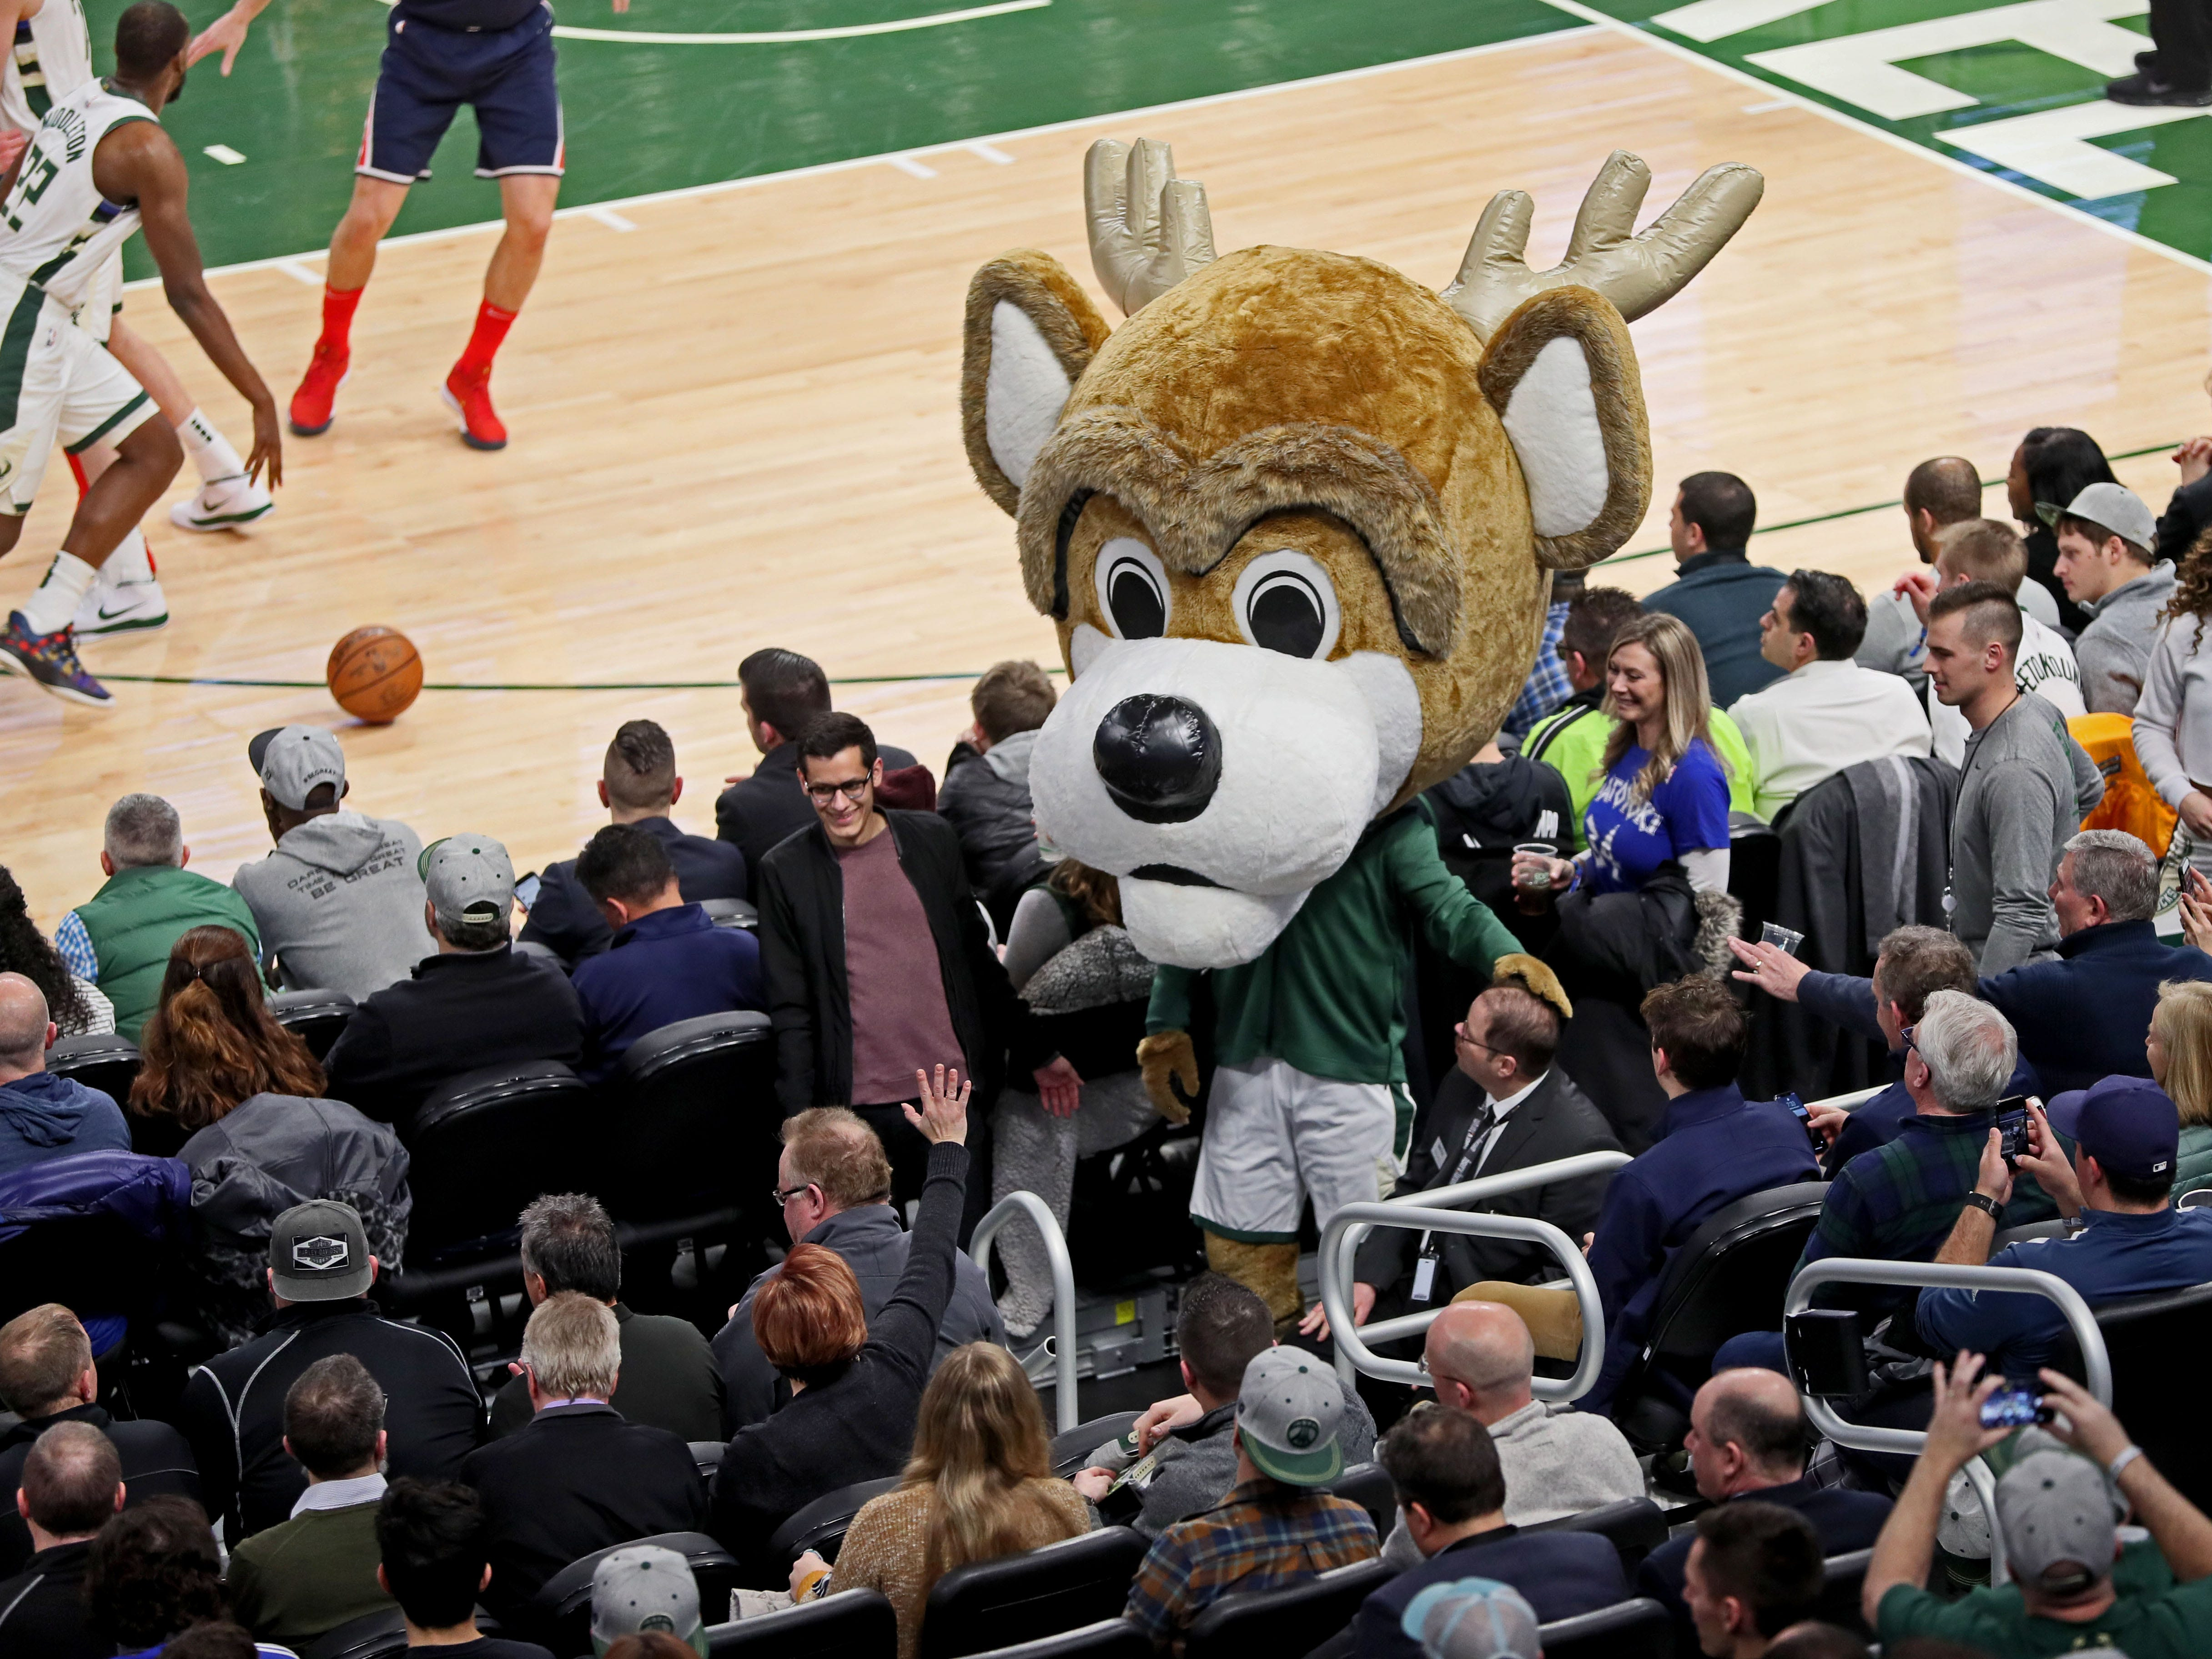 Wearing an even more oversized head than his normal oversized head, Bango  works the crowd.